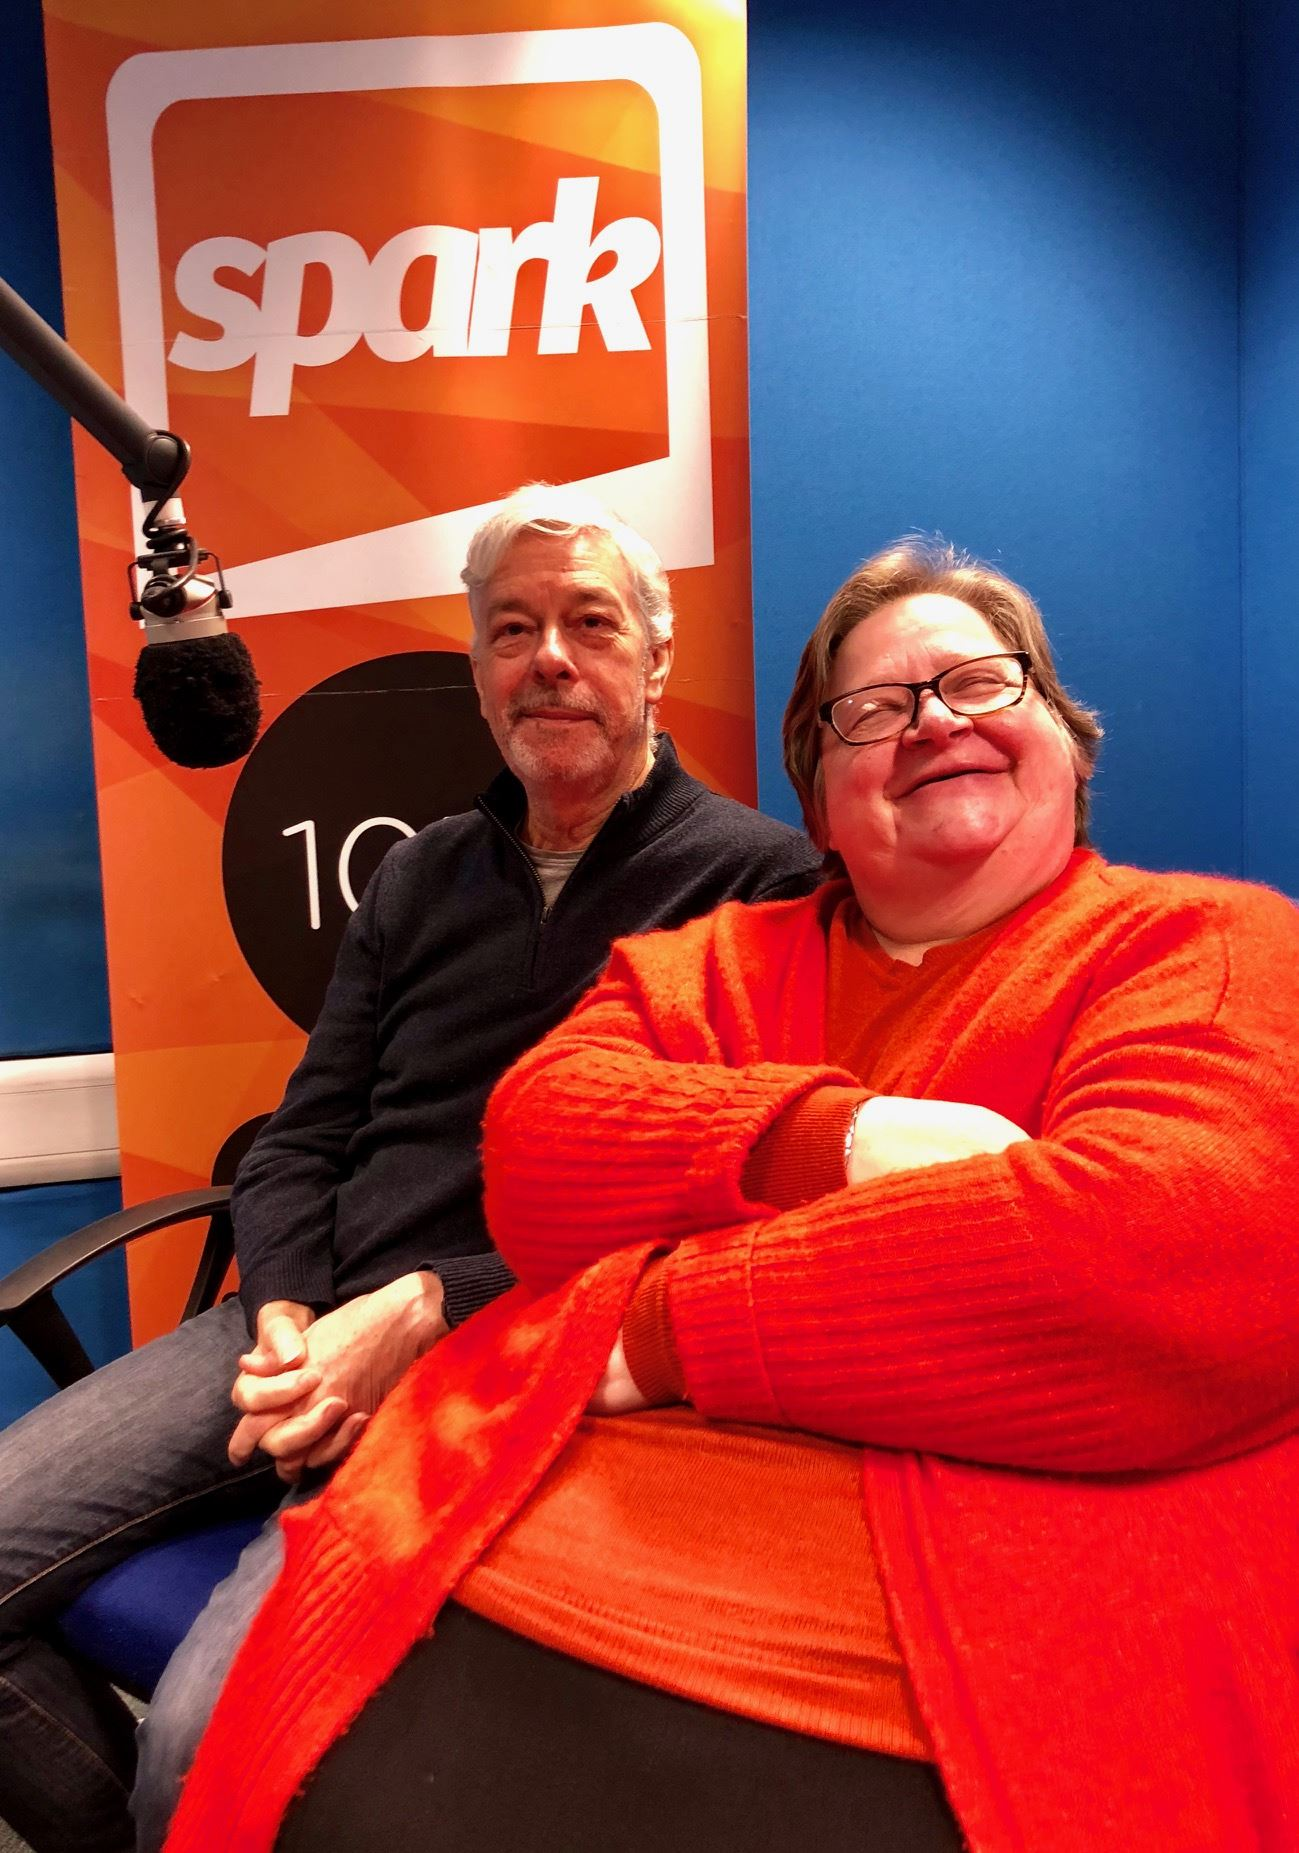 ArtyParti Diane Gray Ben Hudson Community Arts Project North East Sunderland South Tyneside Spark radio live fm community